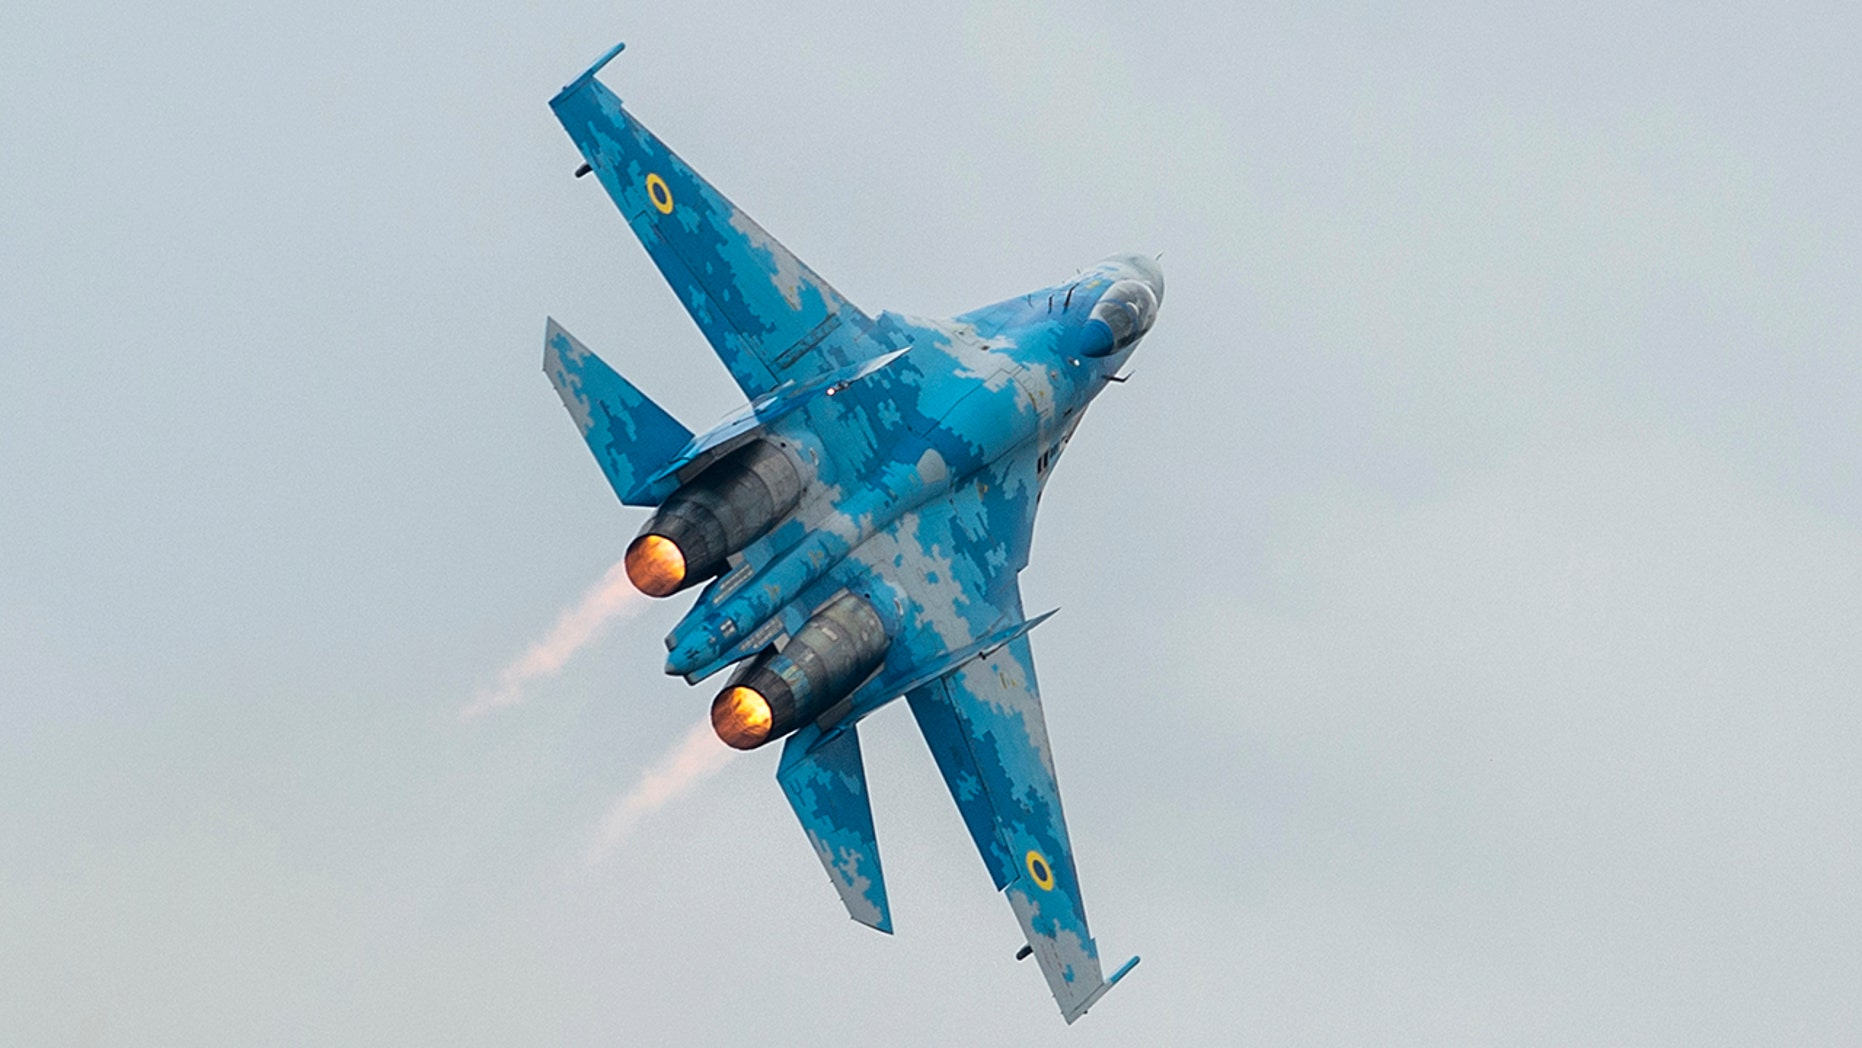 Air Force Pilot Involved in Su-27 Crash in Ukraine, Fate Unknown